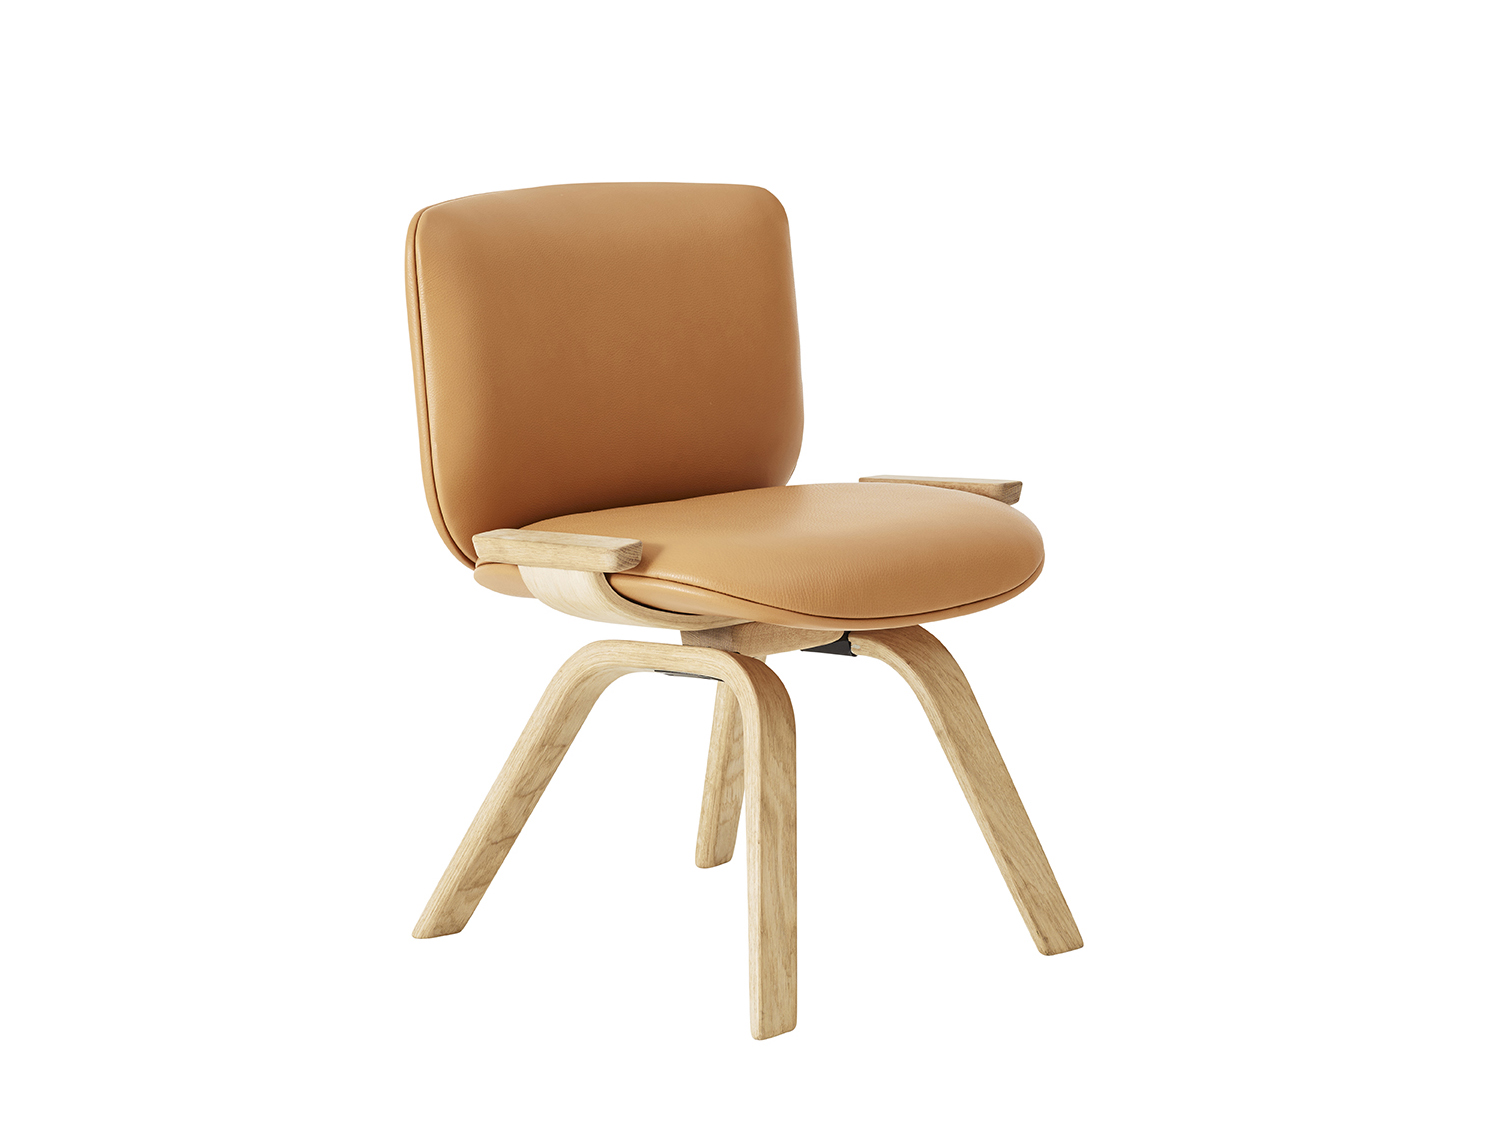 Guest chair for Swedese - Exhibiting at Swedese, Stockholm Furniture Fair, Stand A15:28